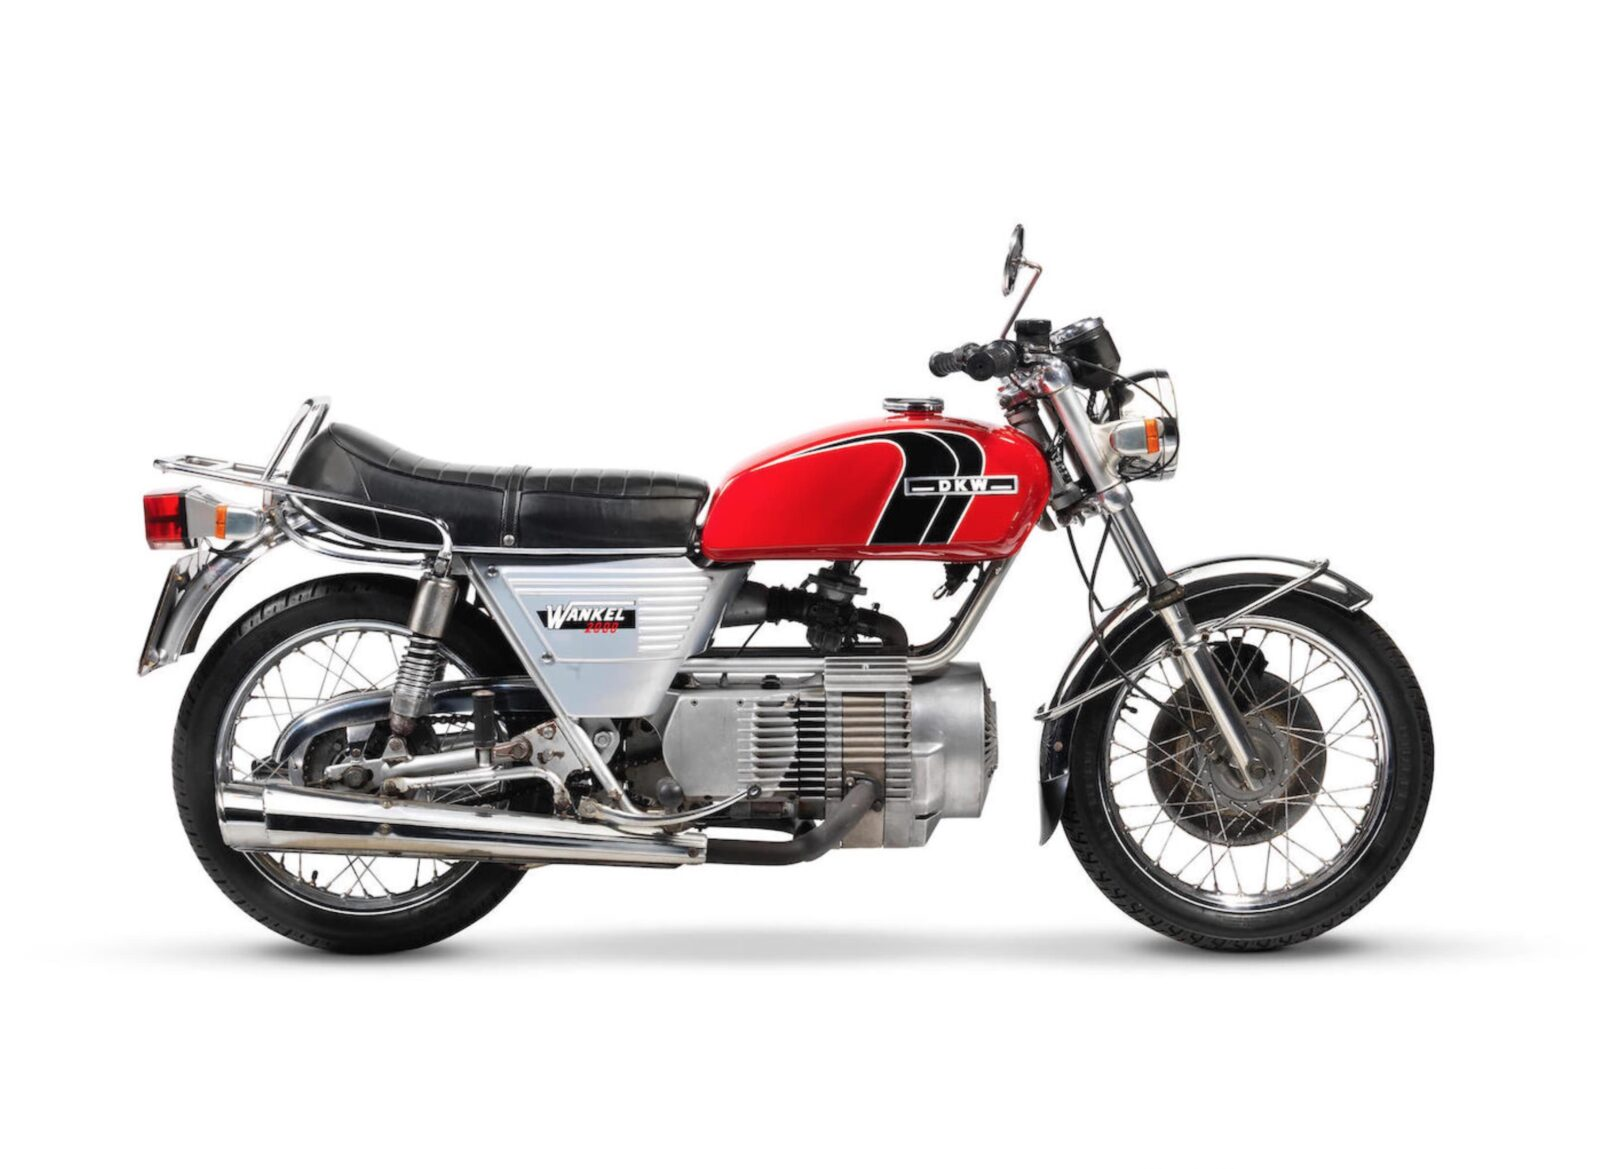 hight resolution of dkw w2000 rotary a wankel rotary motorcycle